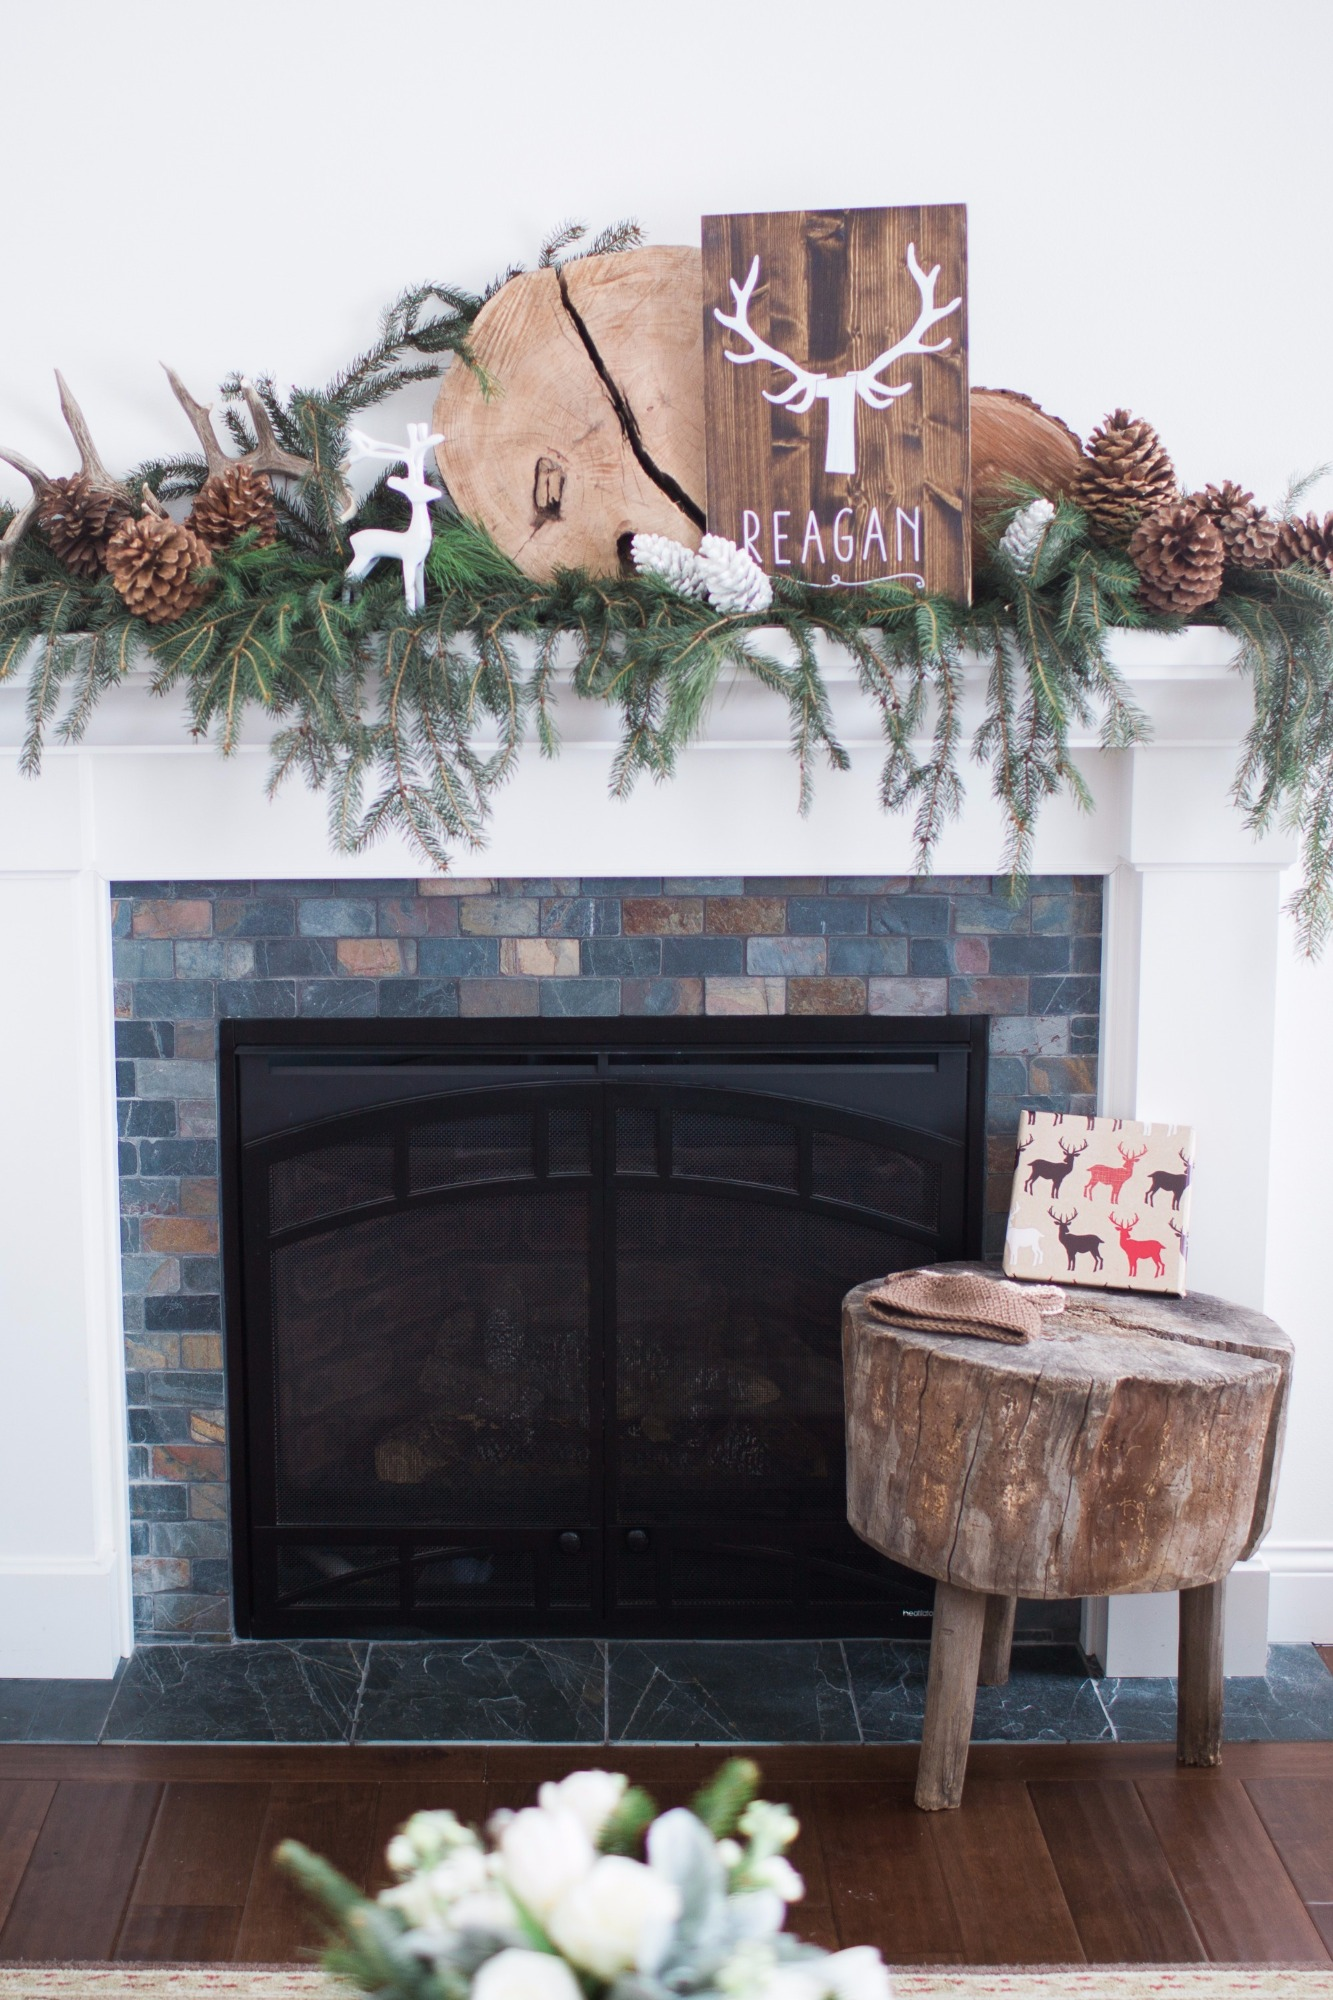 Fireplace Mantel Decor from Vintage Little Deer Birthday Party by Cherry Blossom Events | Black Twine